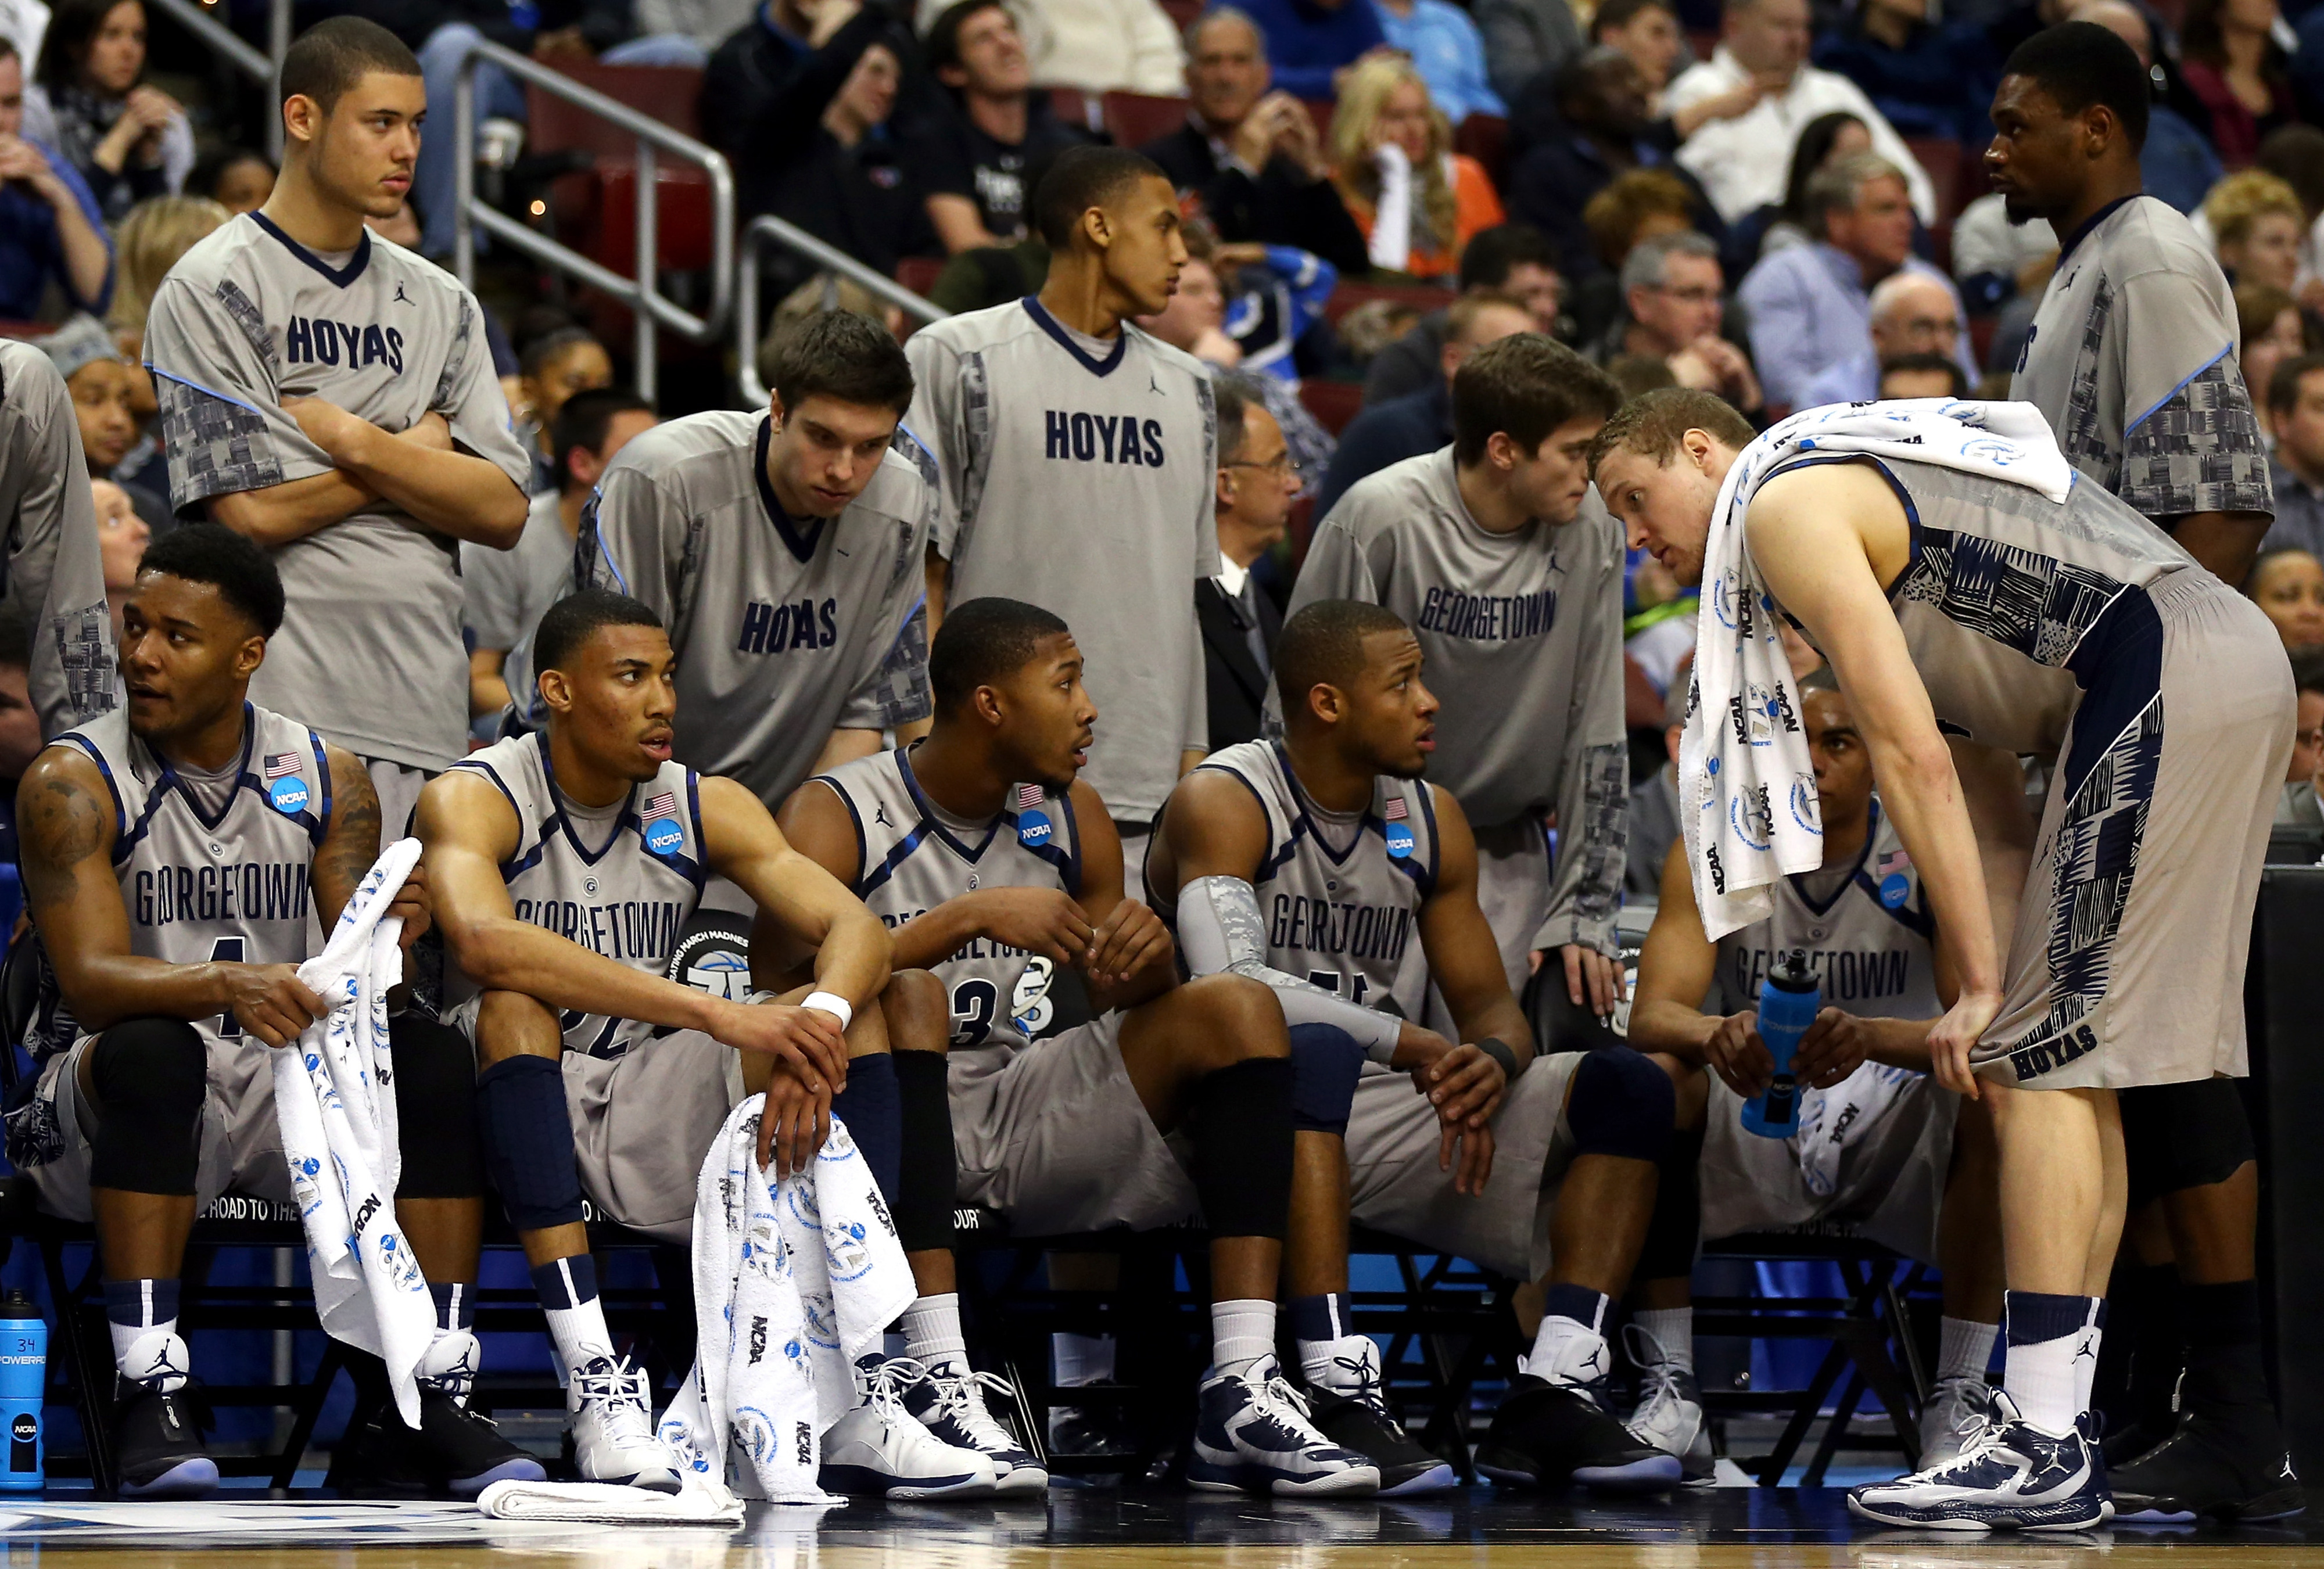 DSR joins in the recent Georgetown tradition of gutting early round losses.